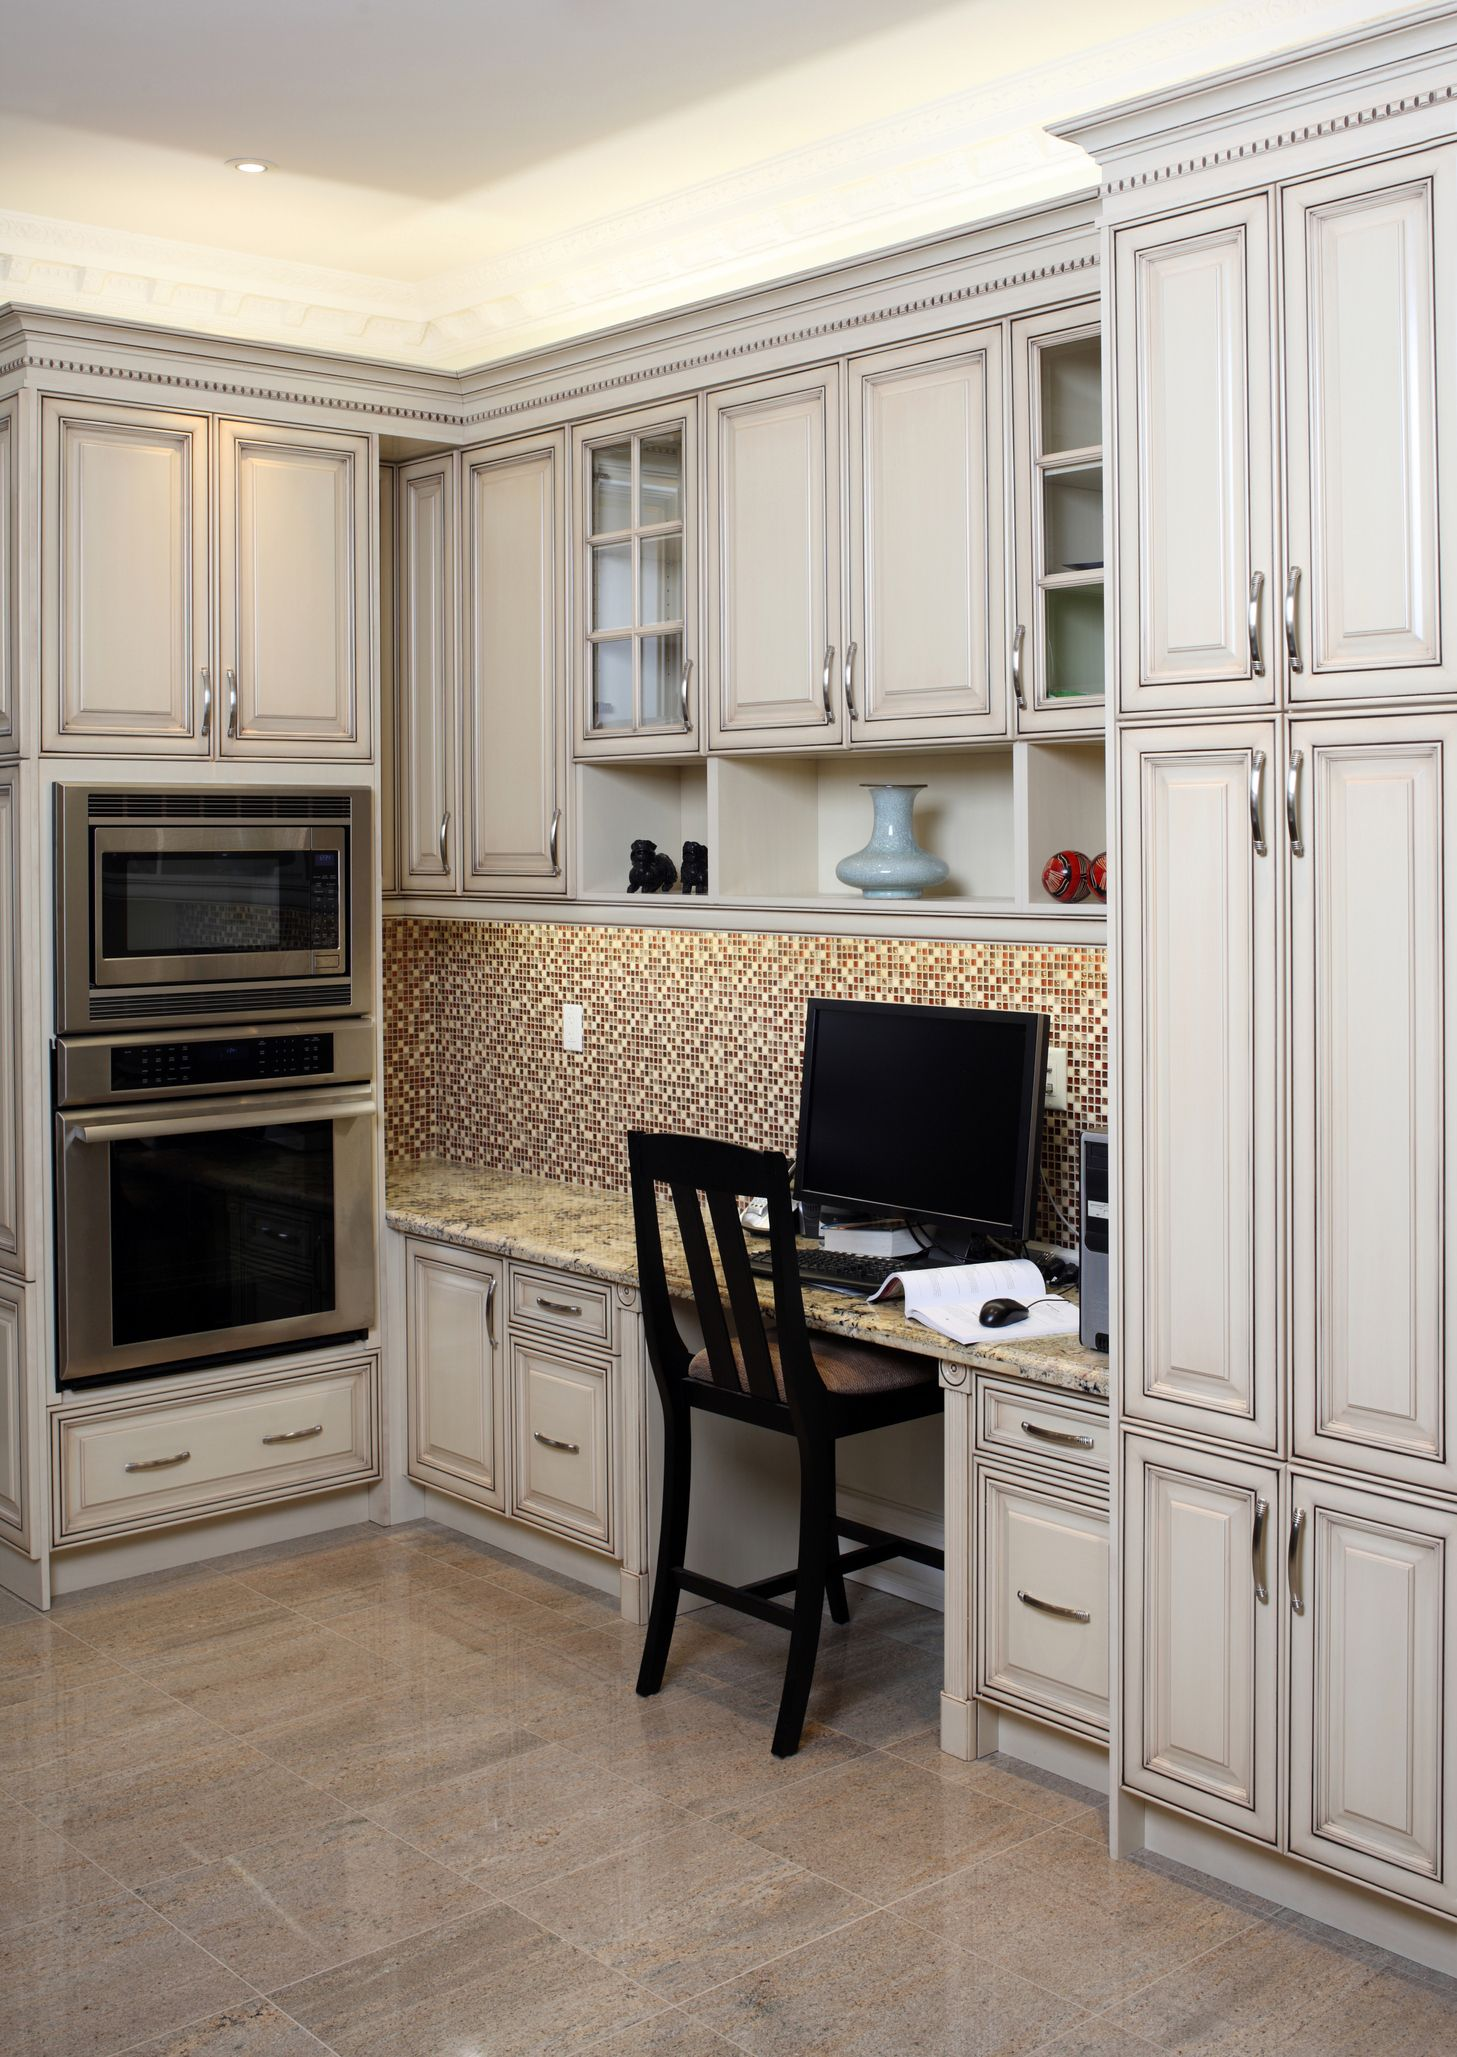 10x10 Kitchen Cabinets: VALUE PACKAGE 10X10 KITCHEN PACKAGE STARTING FROM $2500